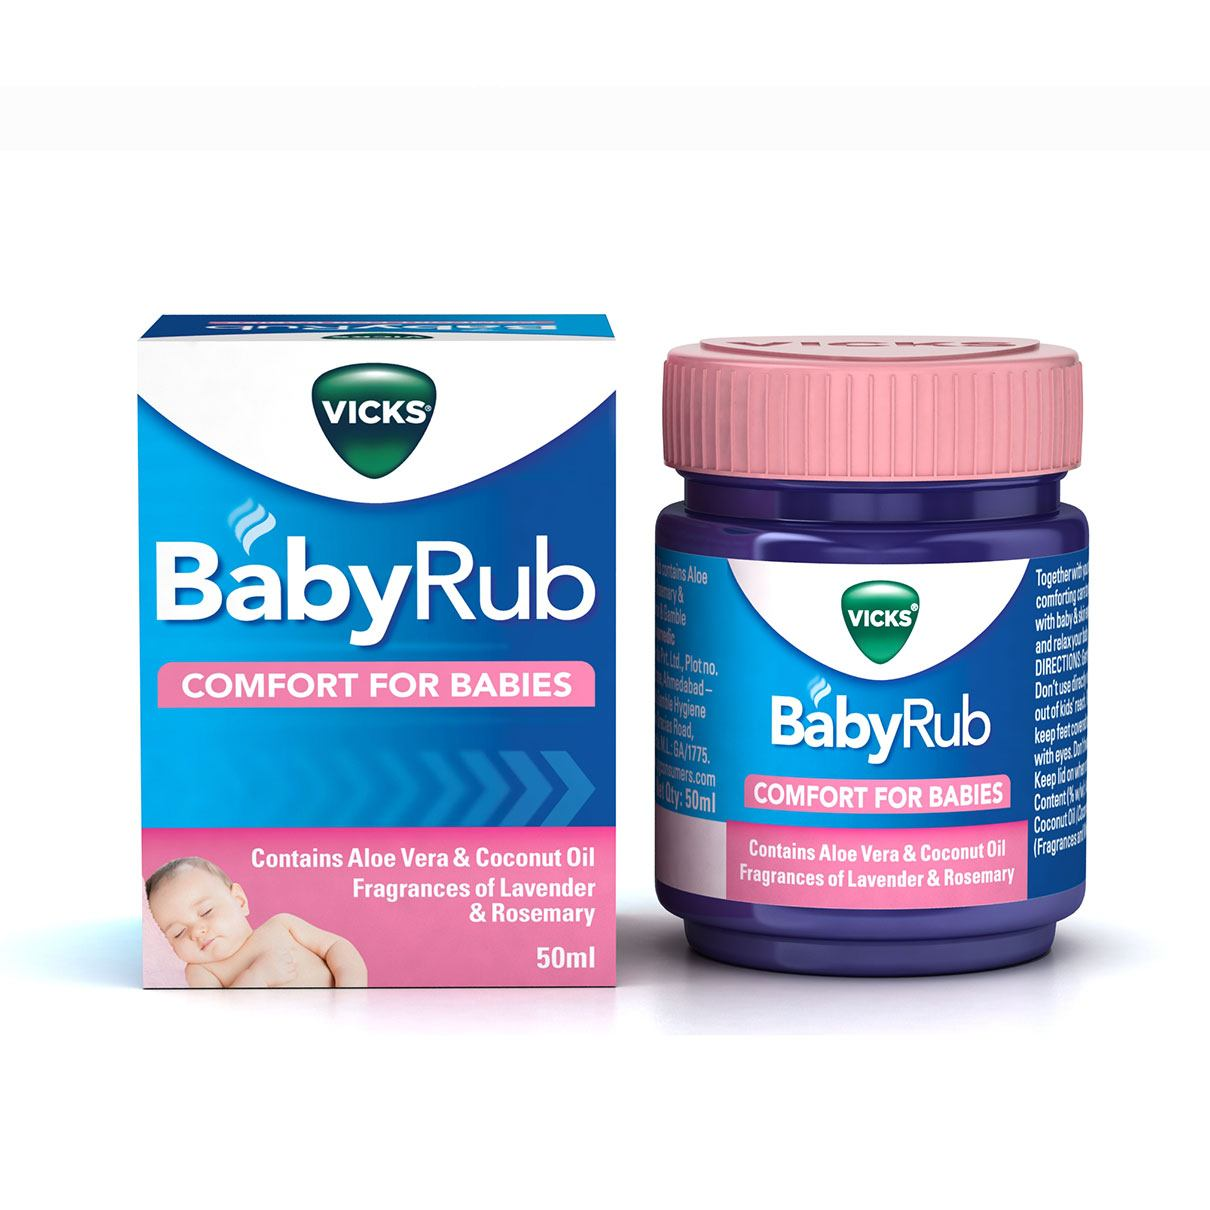 Vicks BabyRub 50ml Box